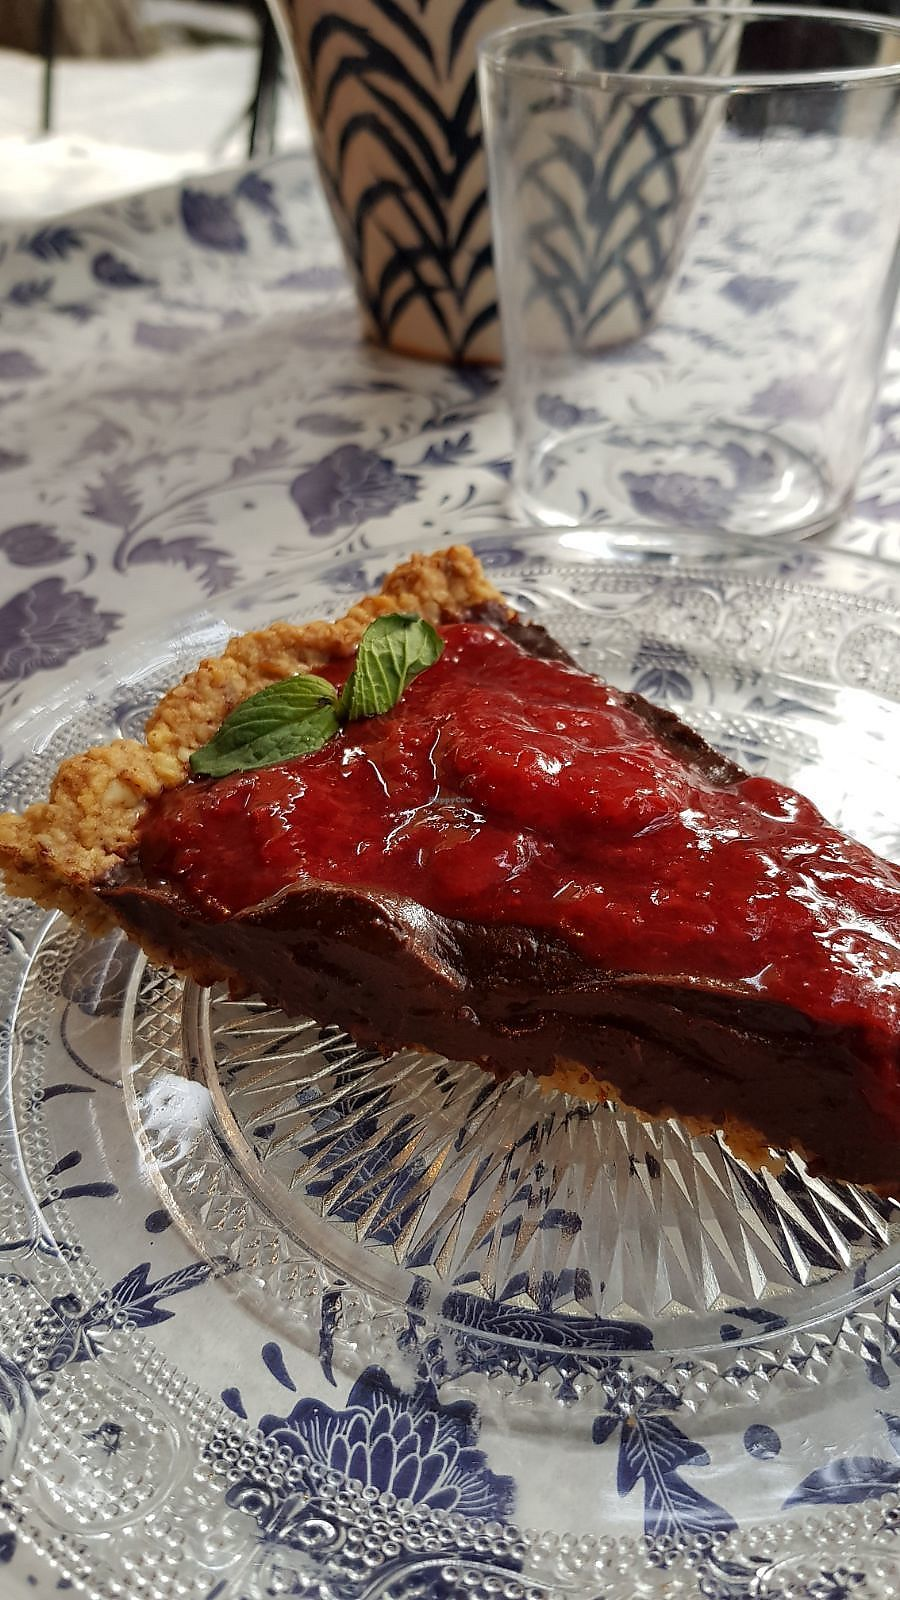 """Photo of Baba Ghanoush Falafel Shop  by <a href=""""/members/profile/vegan.goddammit"""">vegan.goddammit</a> <br/>chocolate cake with strawberry sauce <br/> March 9, 2018  - <a href='/contact/abuse/image/65407/368622'>Report</a>"""